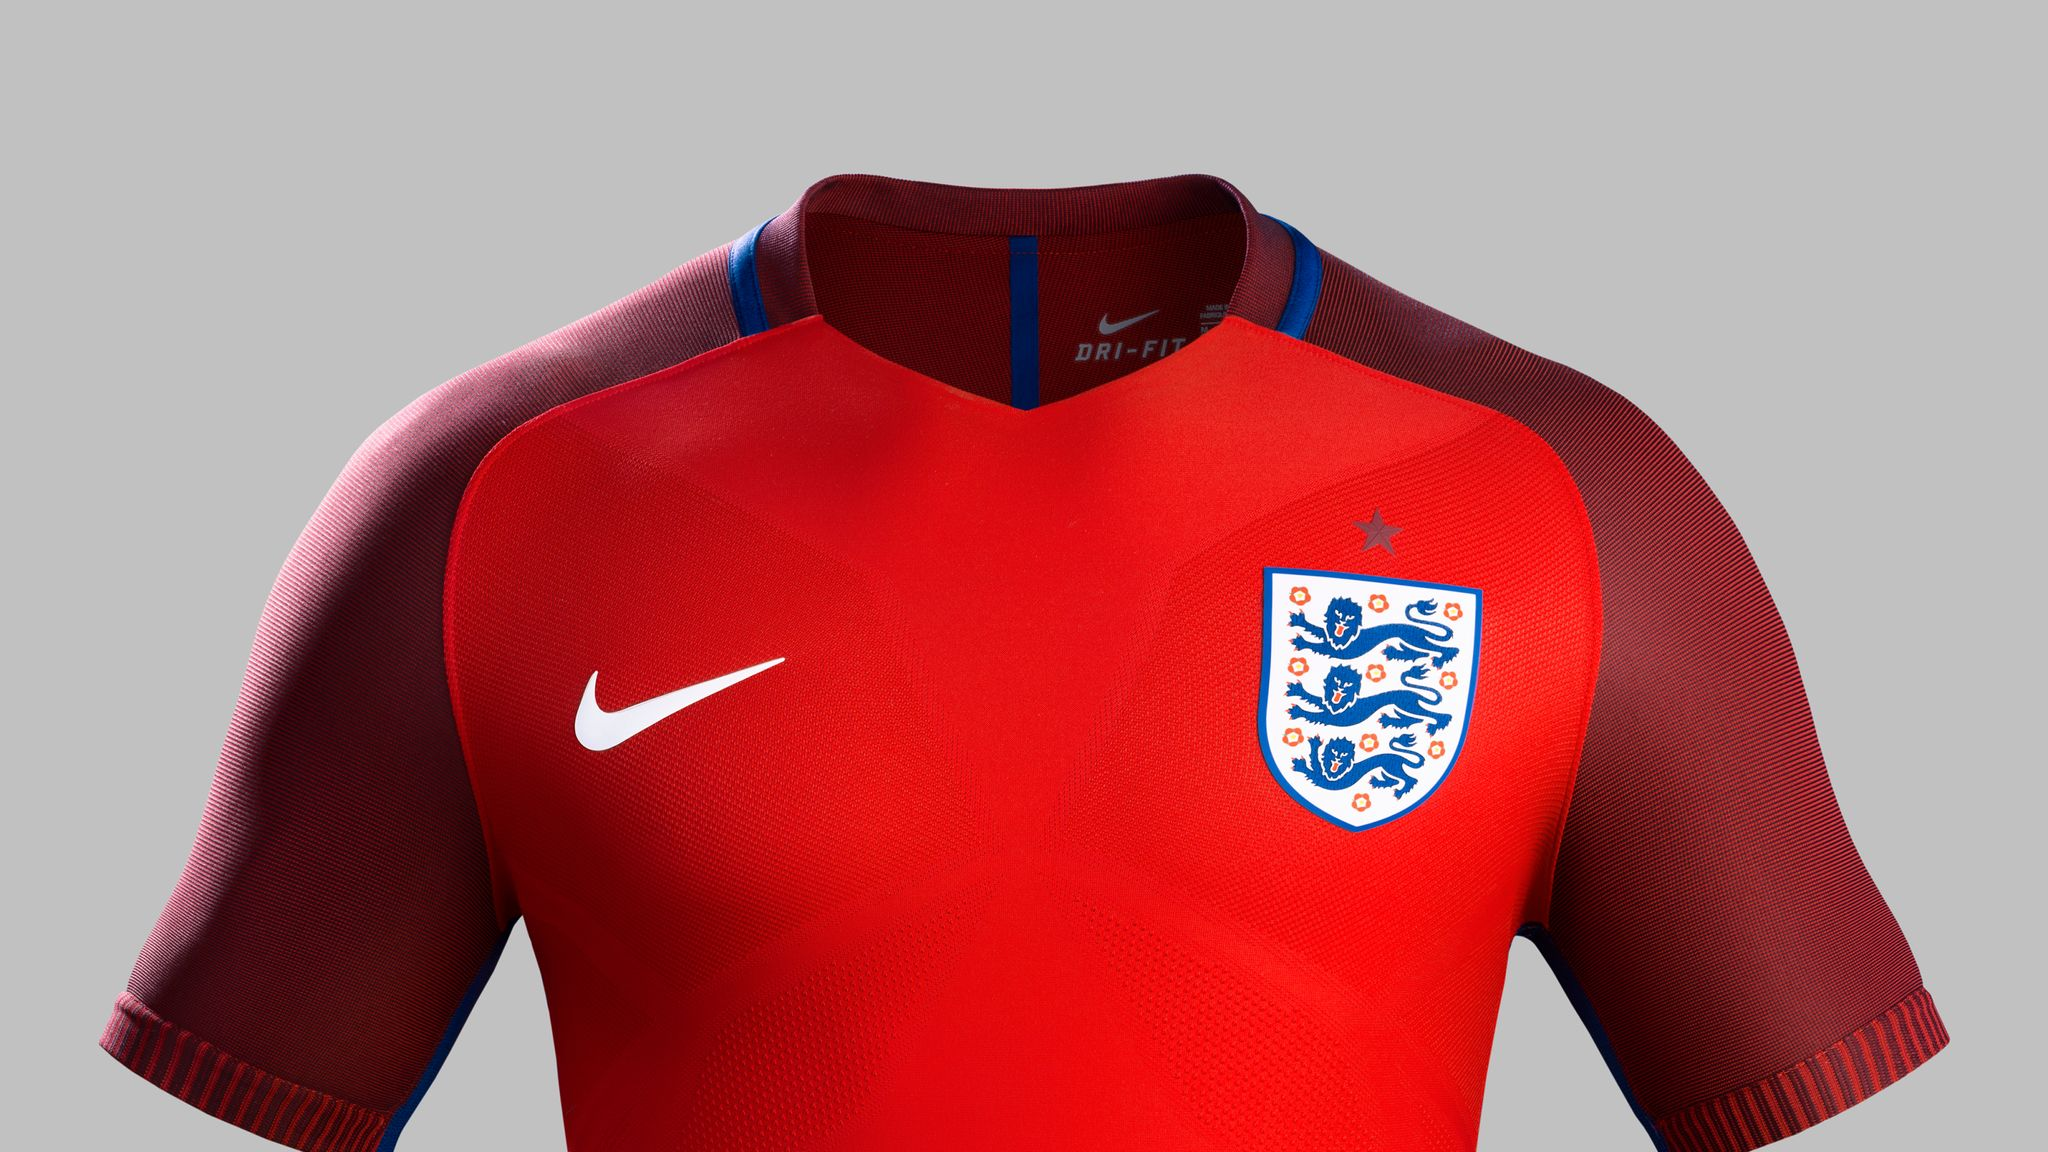 d46e8cf9881 England unveil new home and away kits for Euro 2016 in France | Football  News | Sky Sports